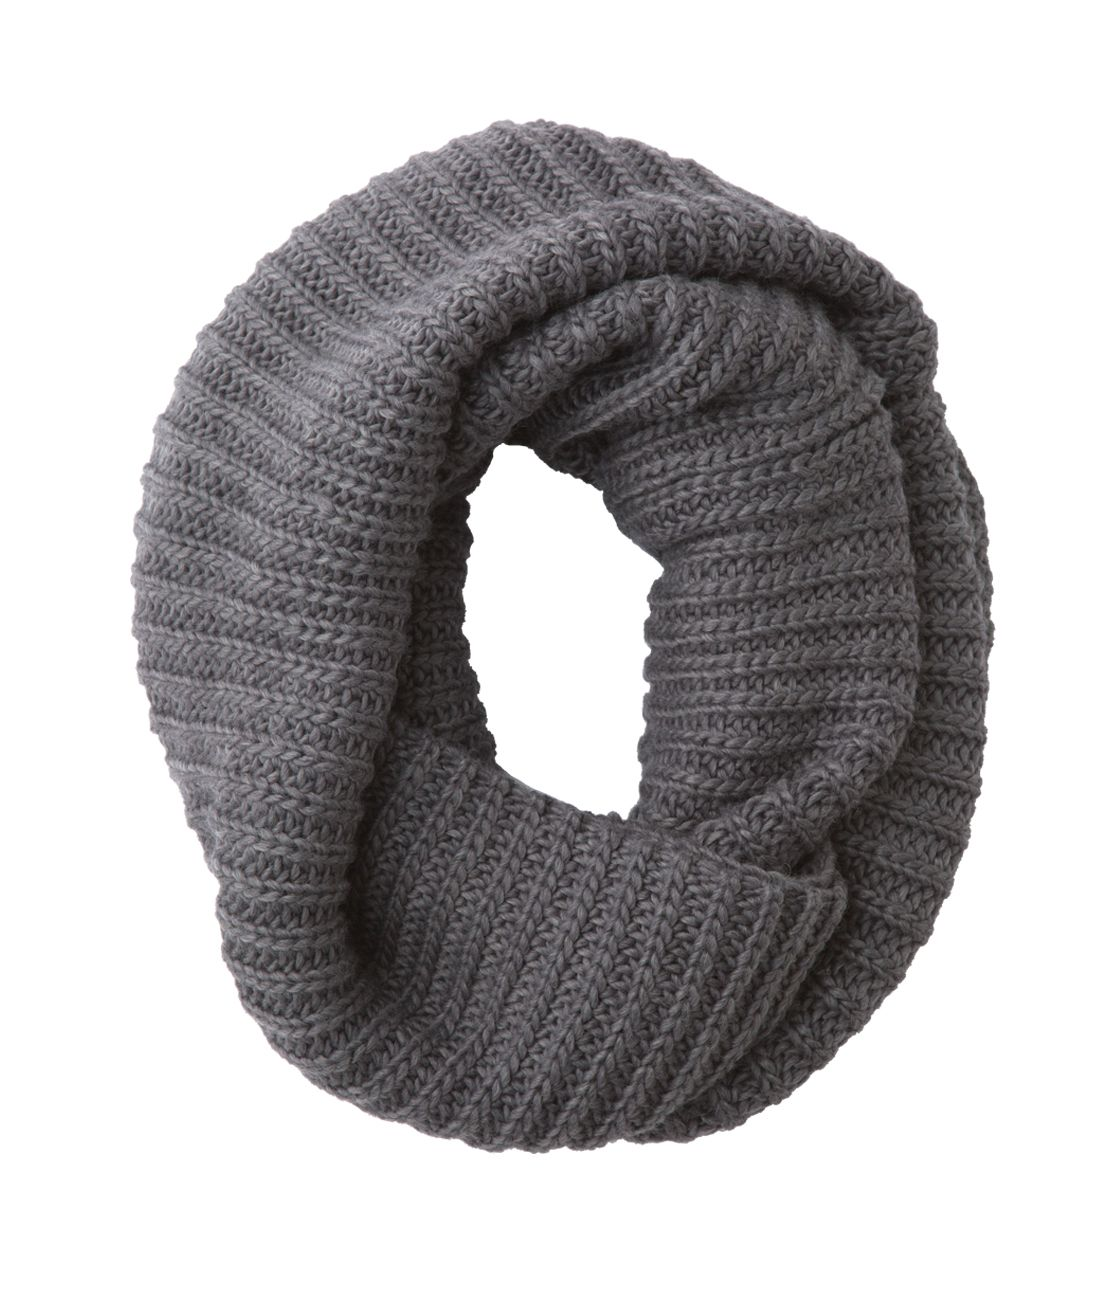 Mix knit snood